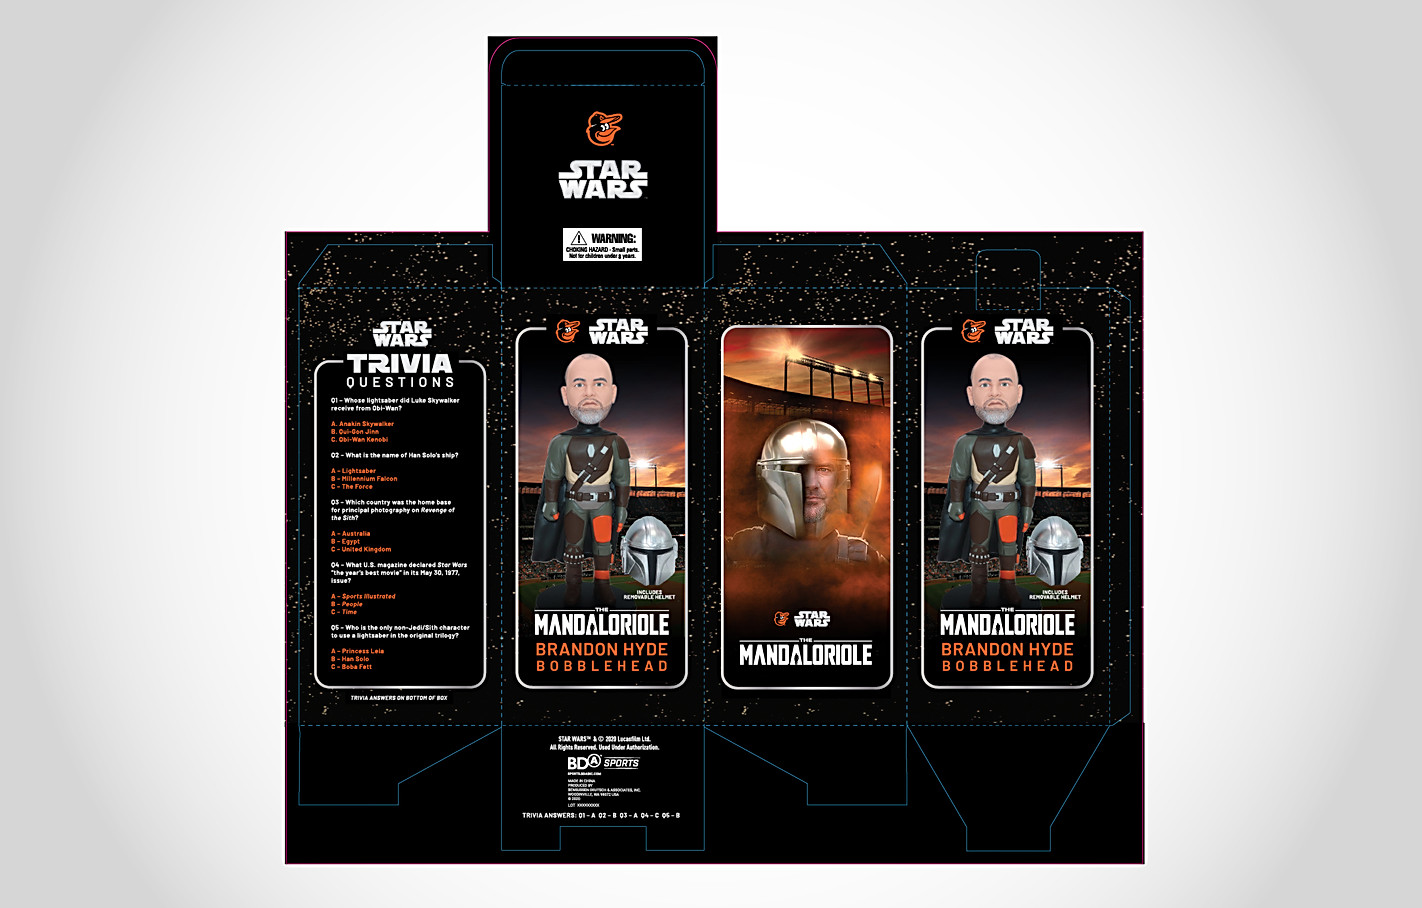 Orioles Star Wars The Mandaloriole Bobblehead Packaging